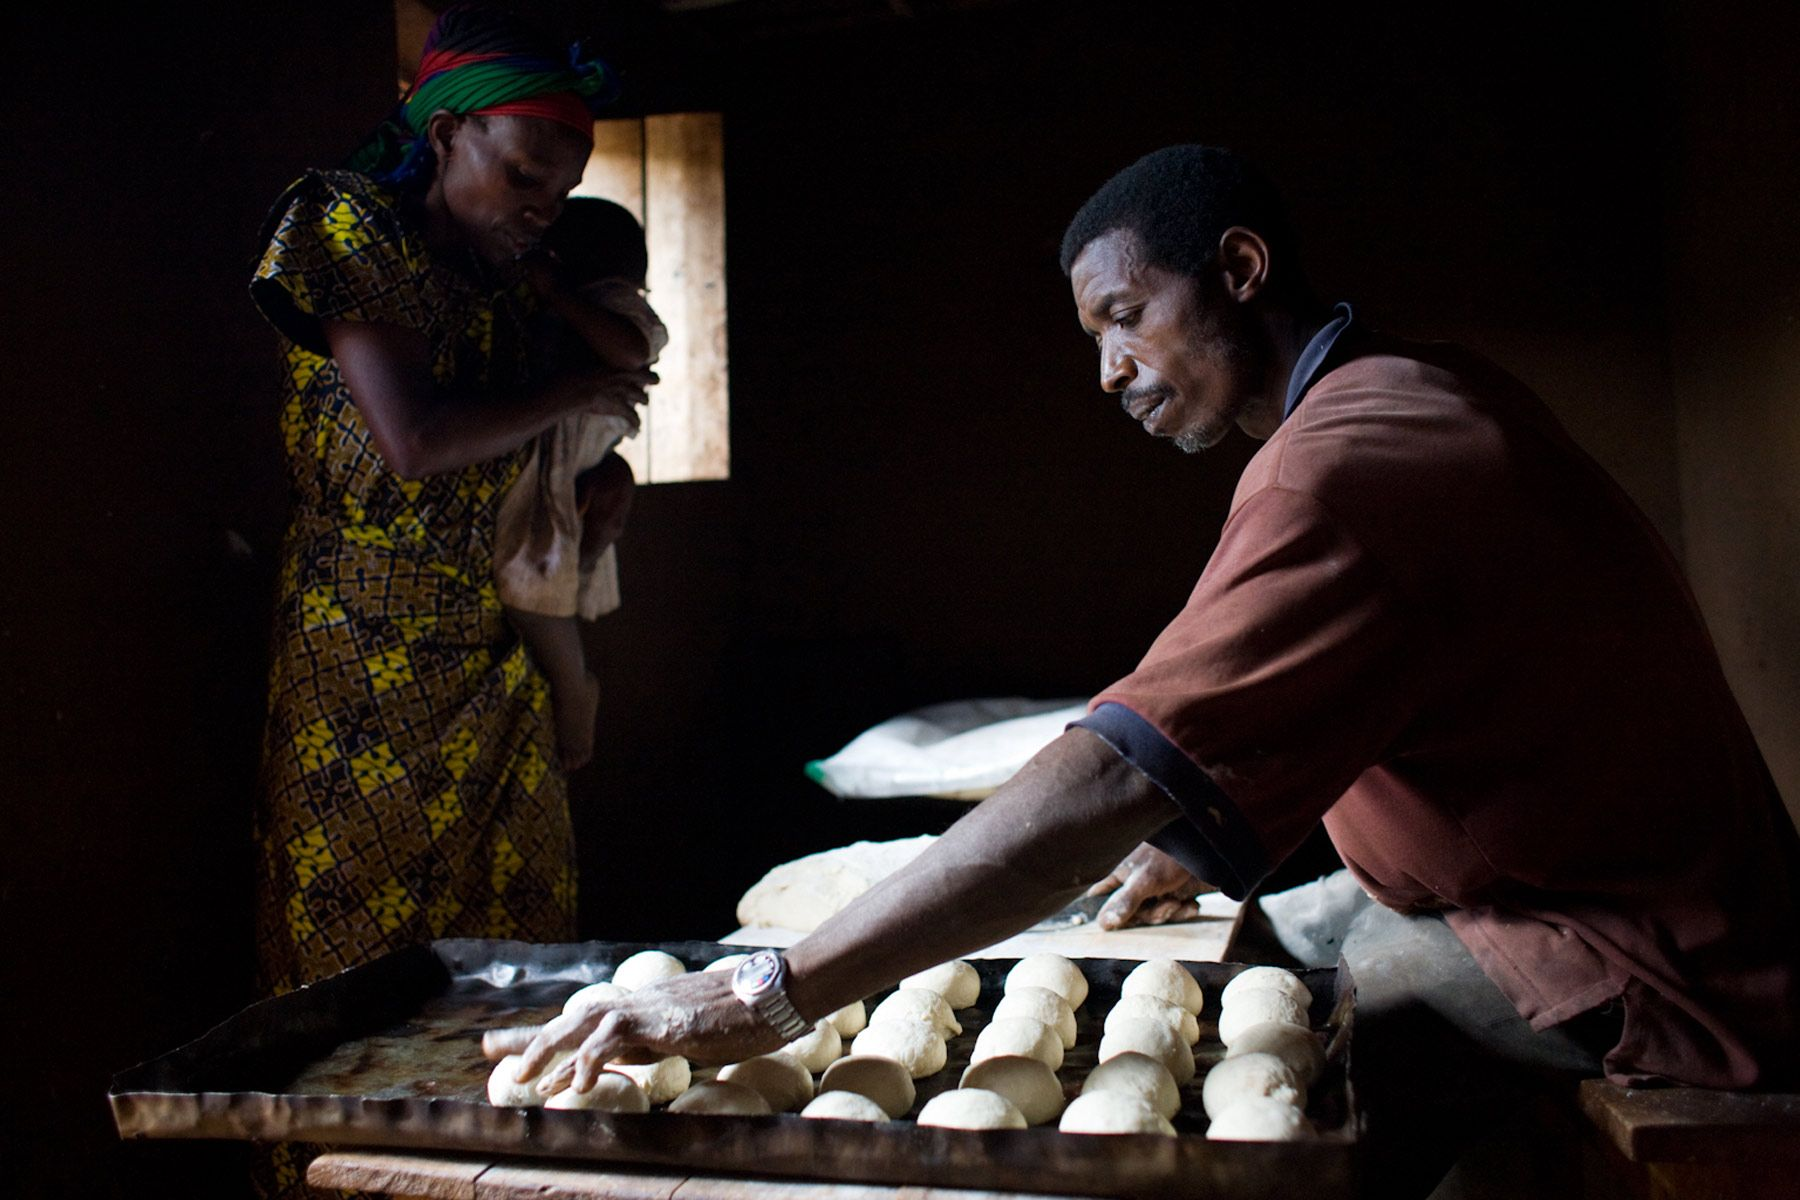 Turame Community Finance Burundi Africa loan recipient Viola with her baker and child